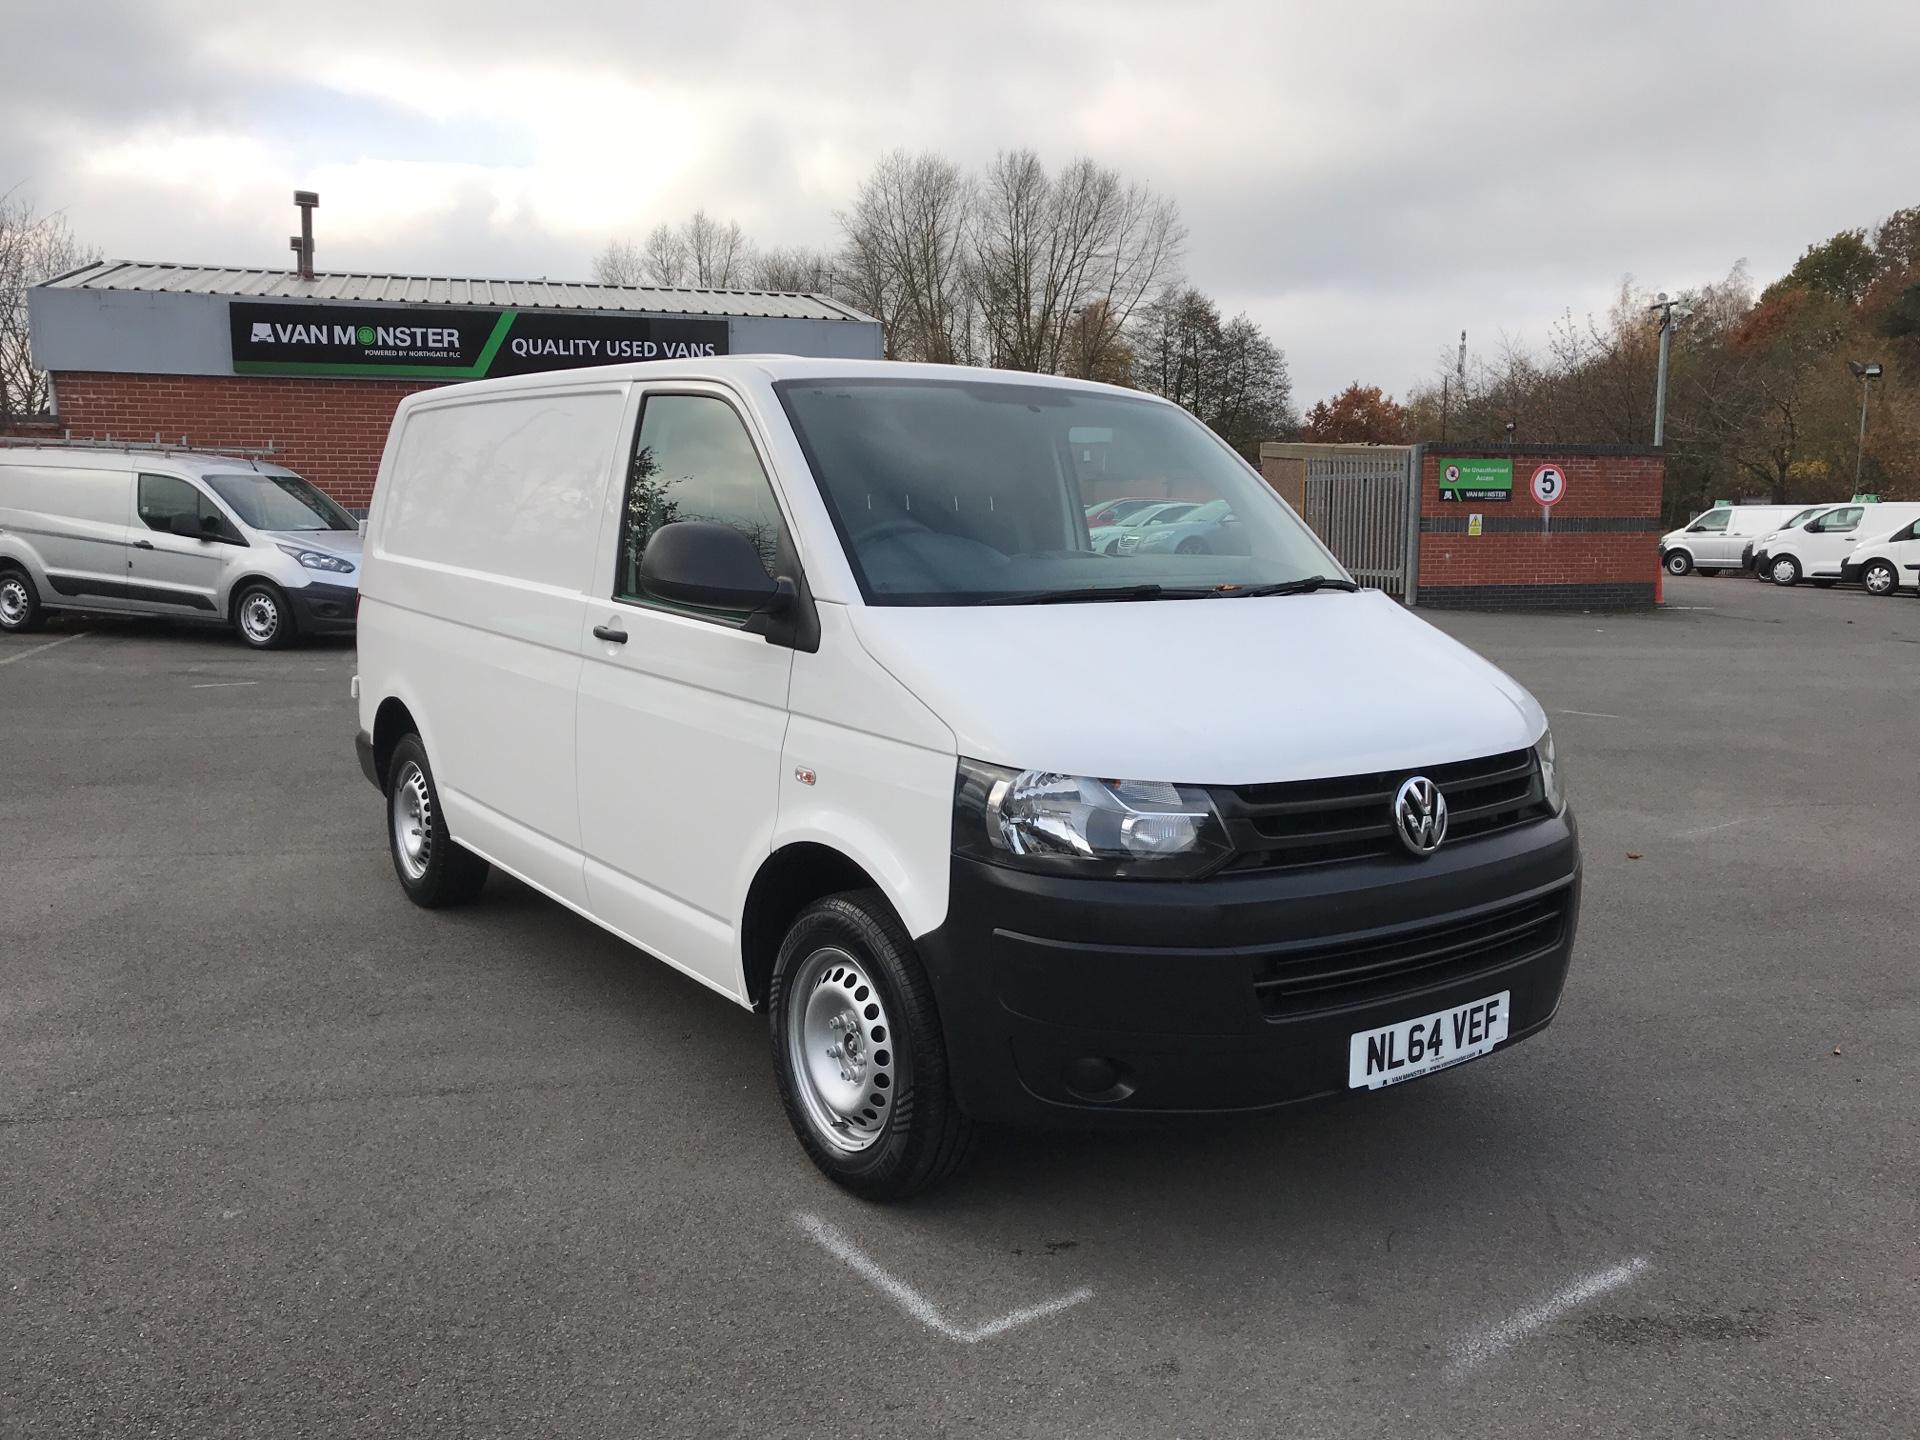 2014 Volkswagen Transporter 2.0 Tdi 102Ps Startline Van *this is a value van and priced according to condition* (NL64VEF)